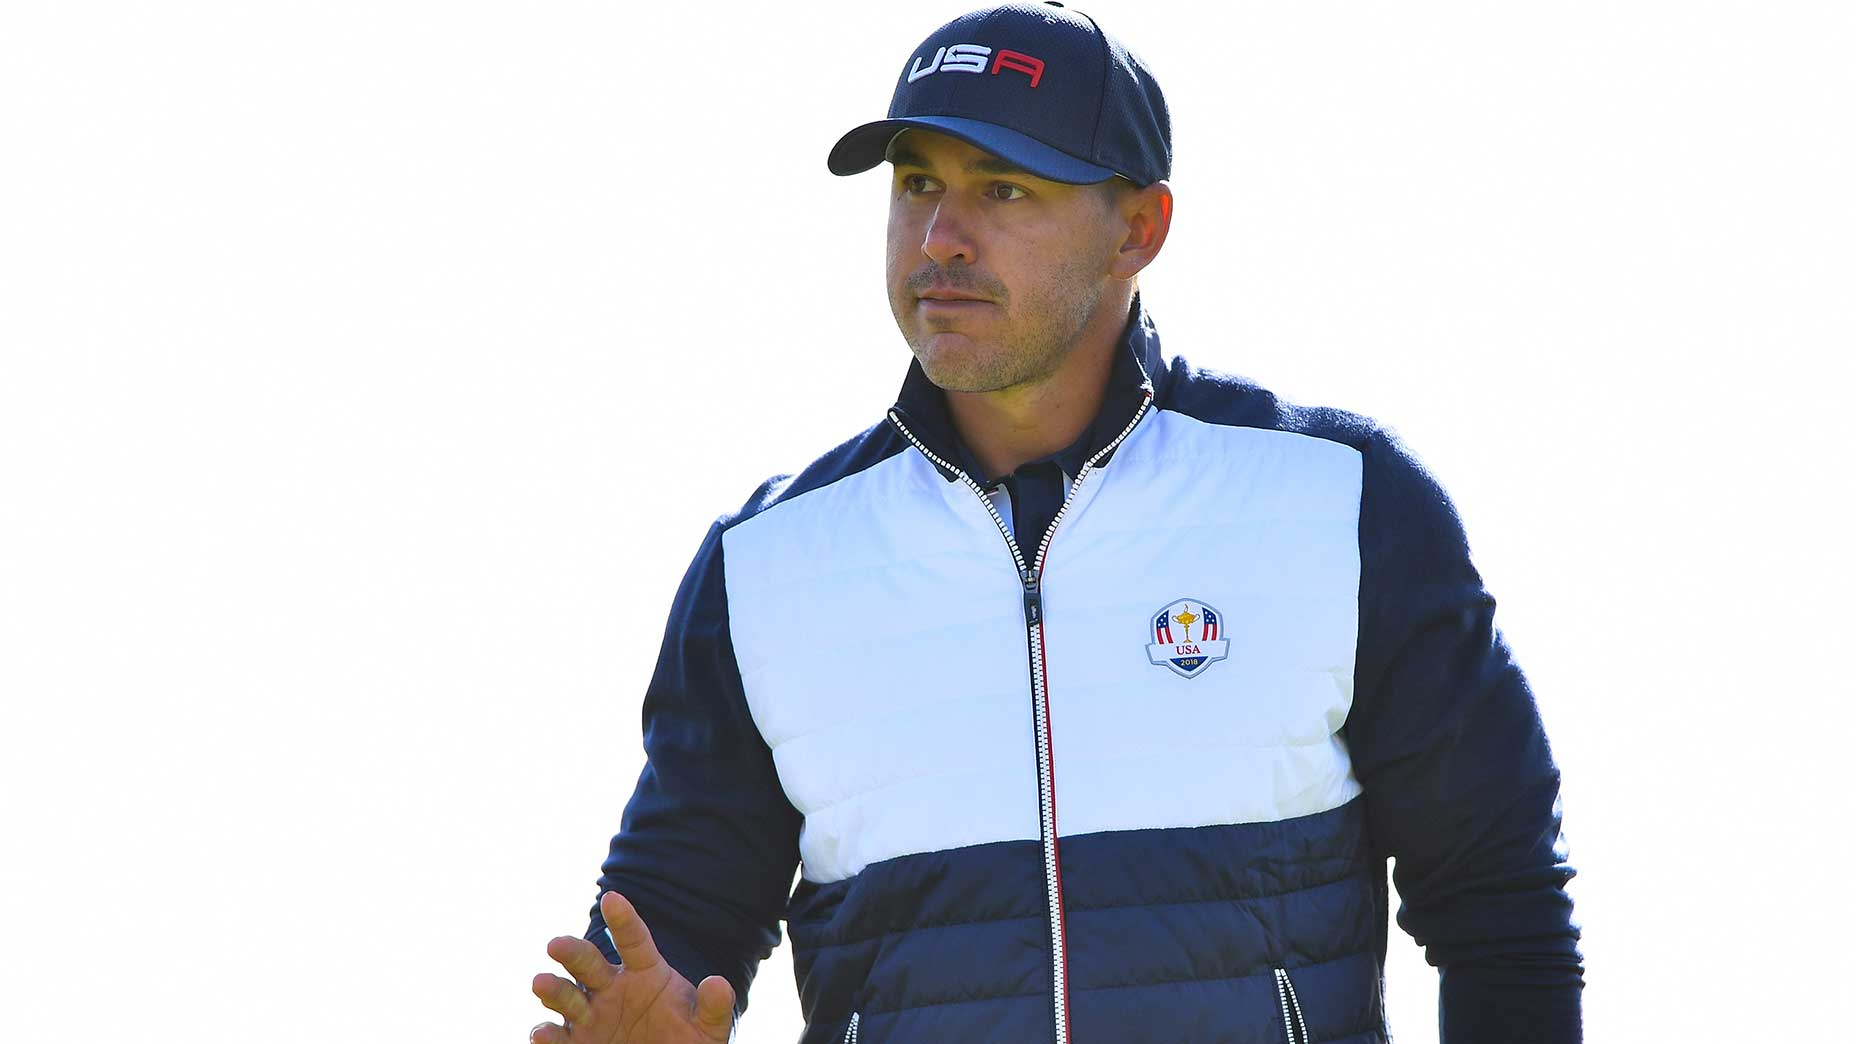 Brooks Koepka at the 2018 Ryder Cup.